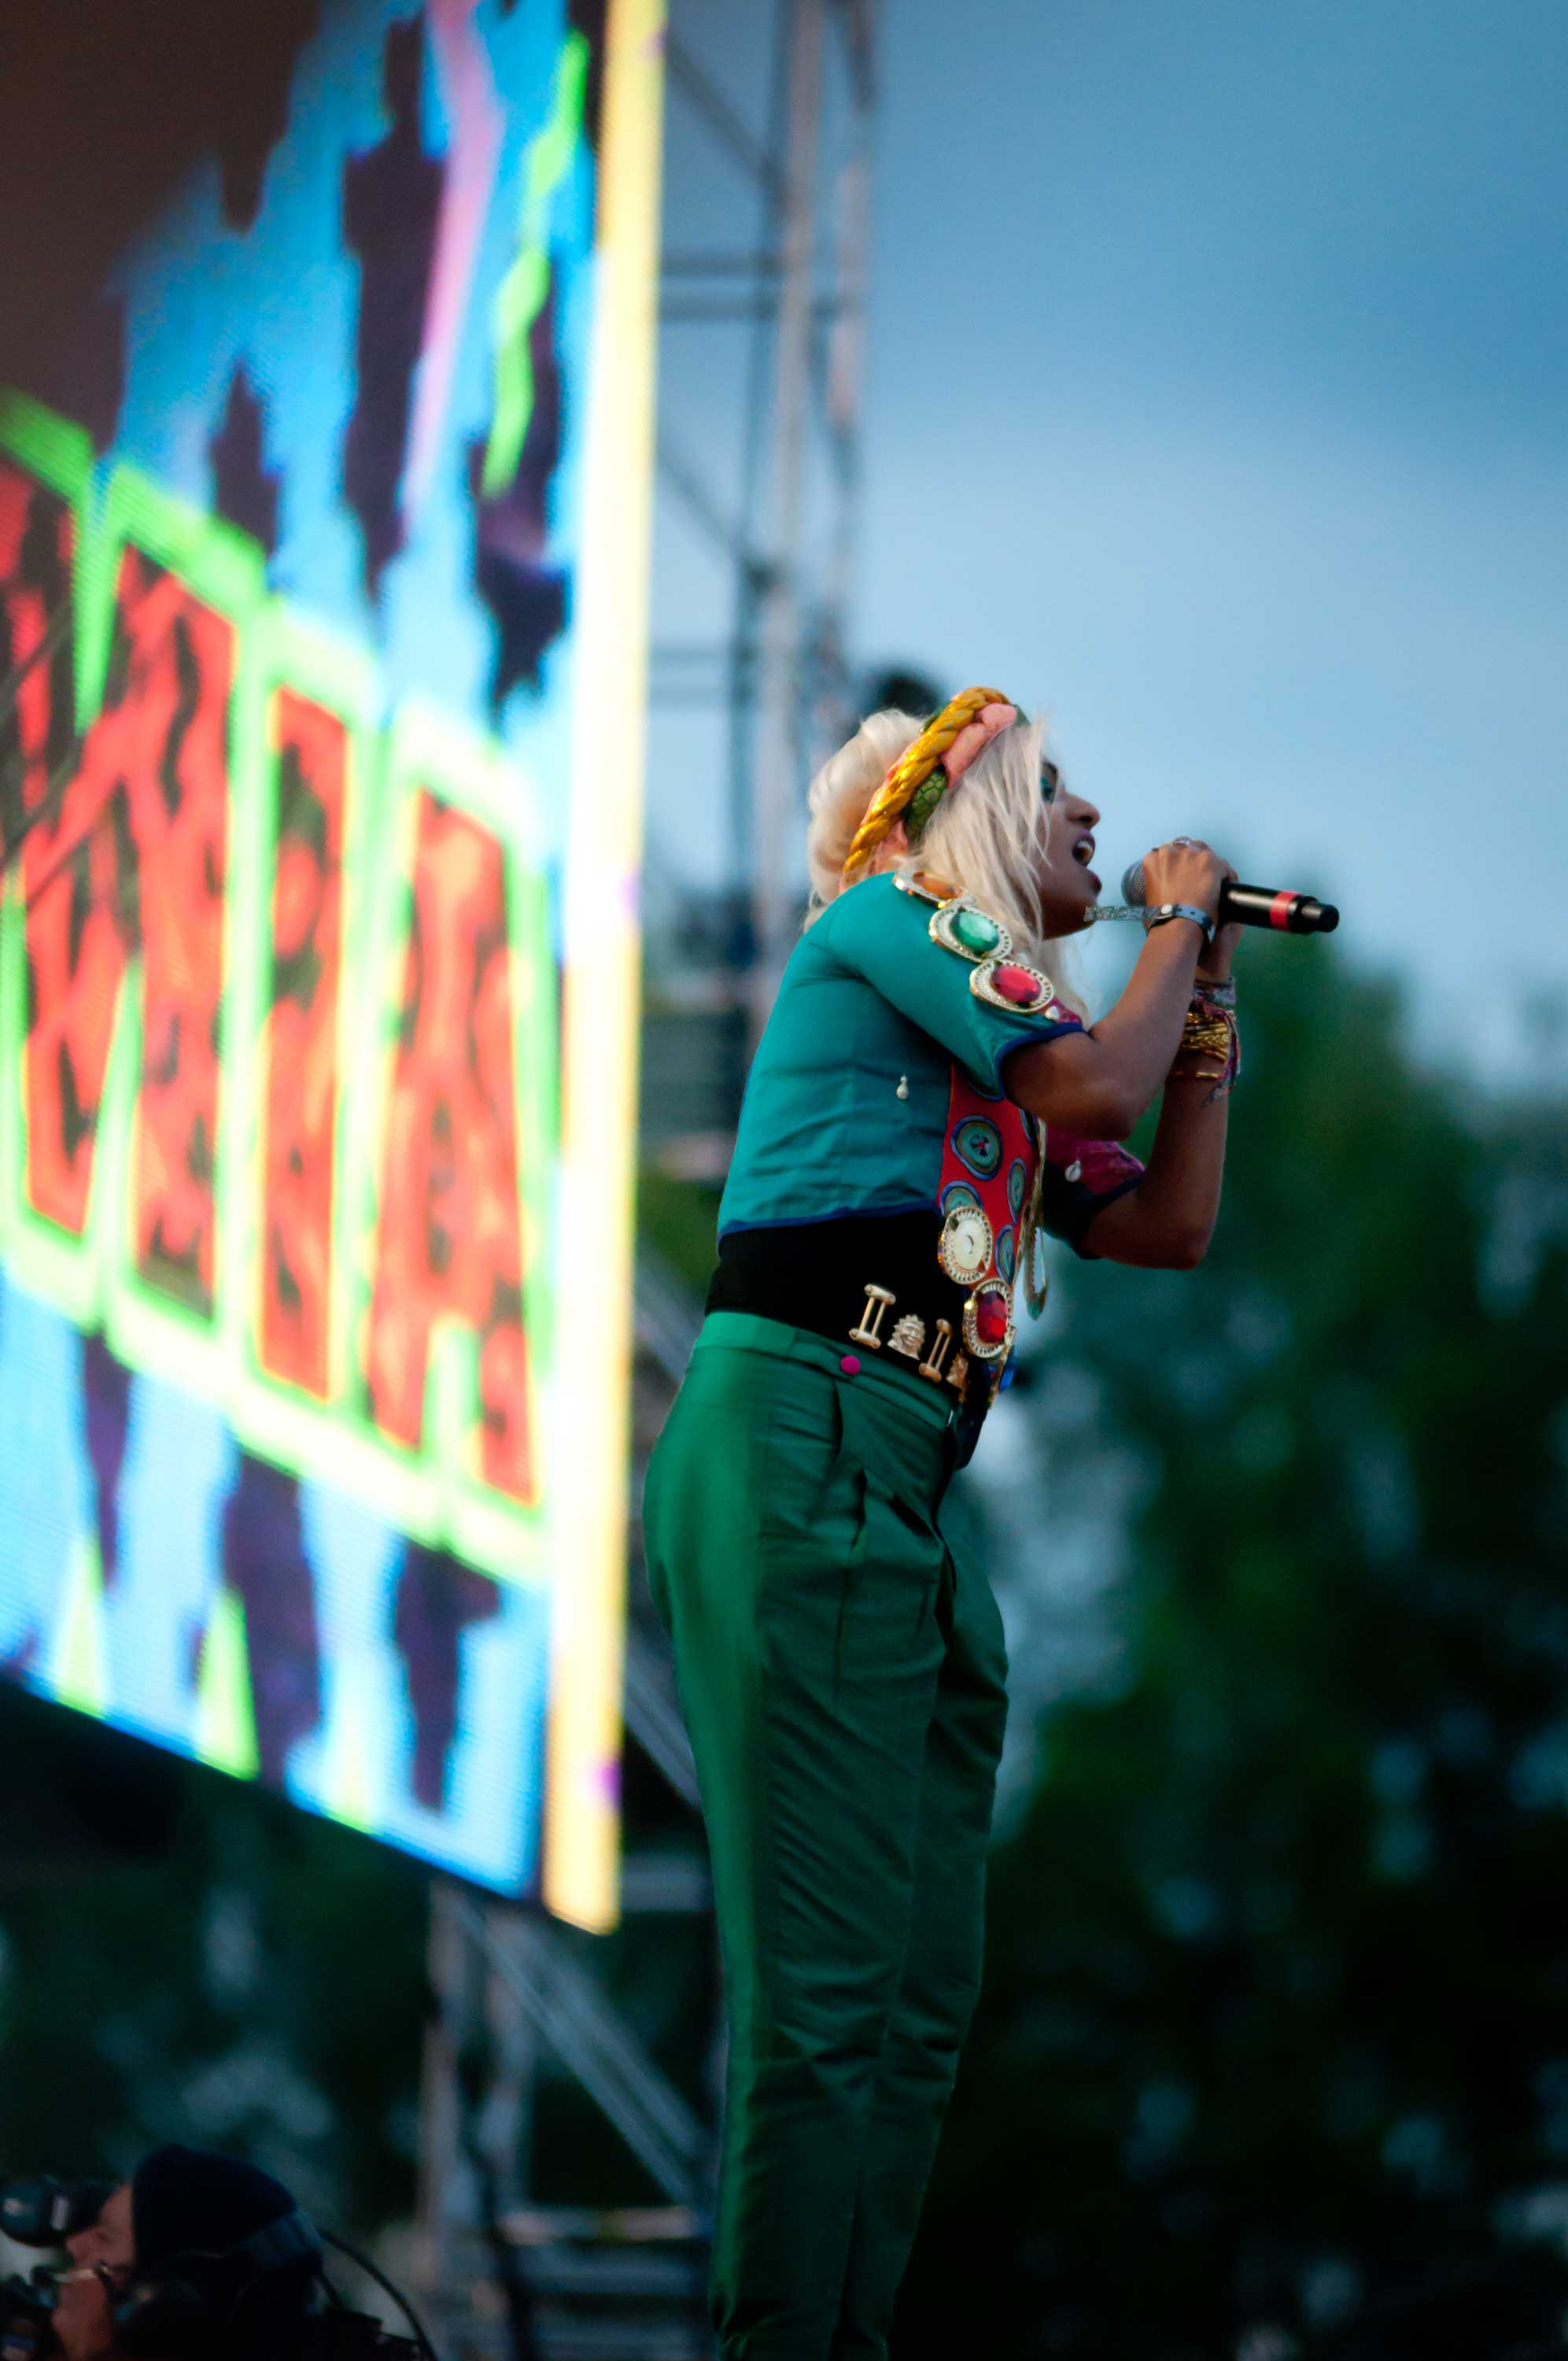 M.I.A. at the 2011 Peace and Love Festival. (possan/Flickr)